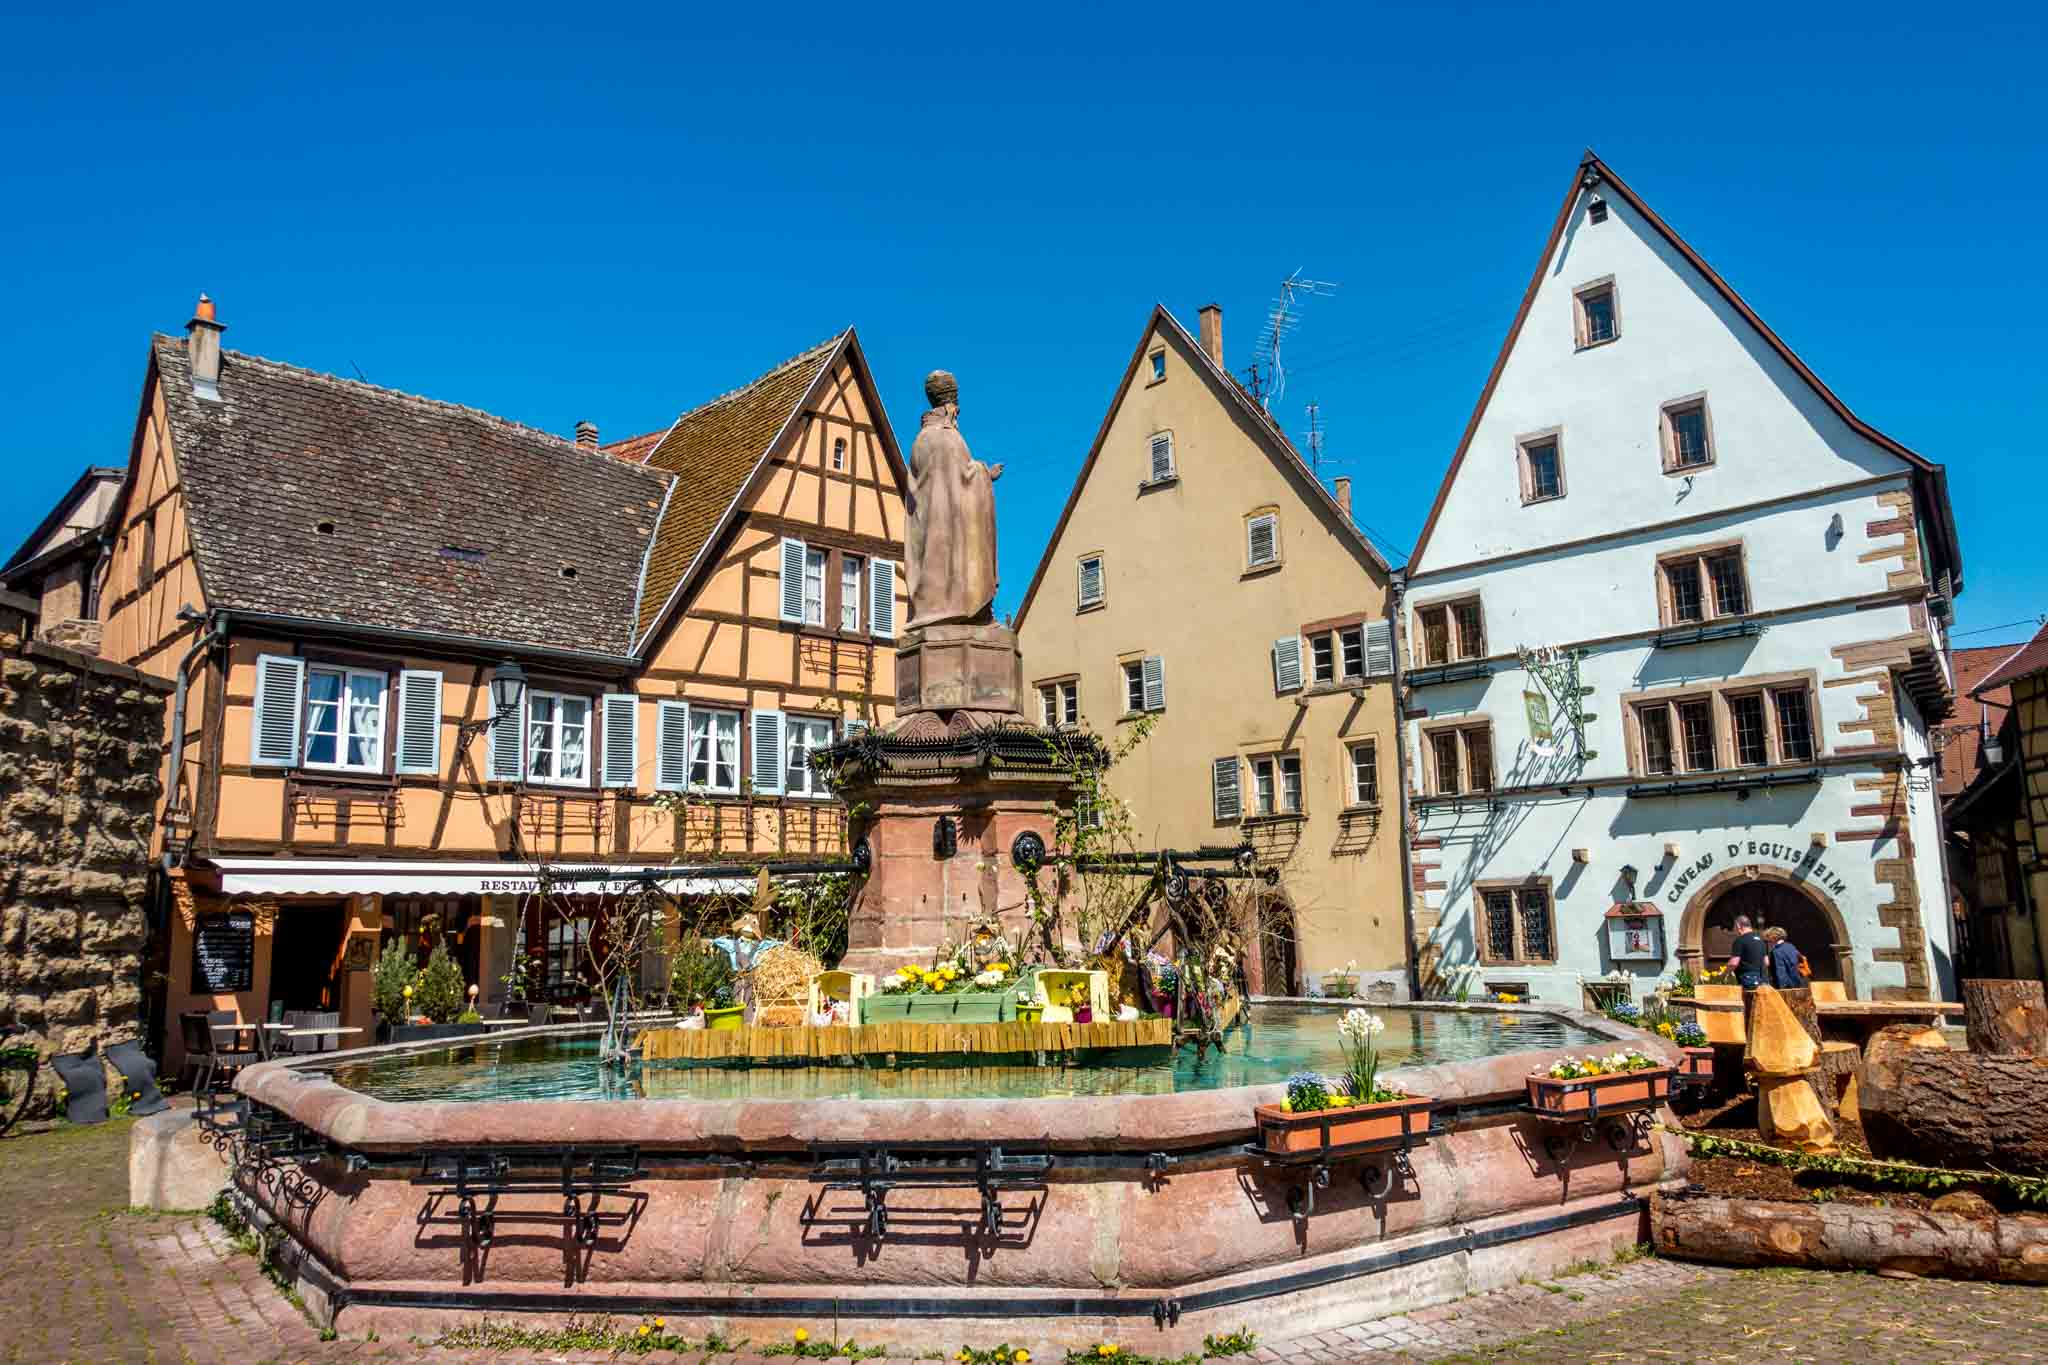 Fountain and buildings in Eguisheim town square on the Alsace wine route